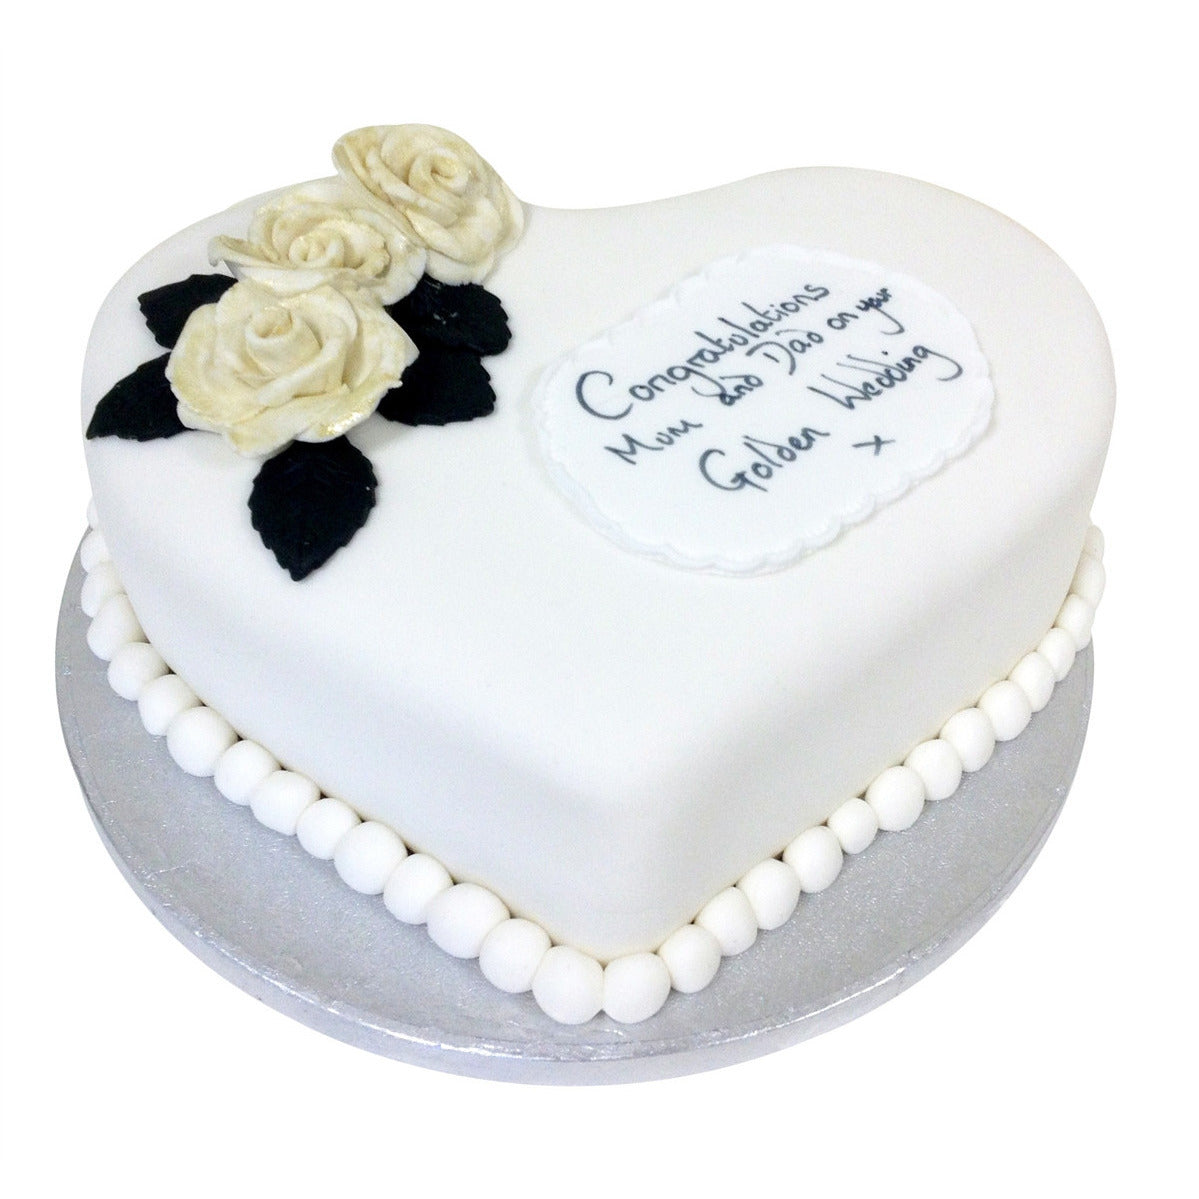 Gold Wedding Anniversary Cake - Buy Online, Free UK Delivery – New Cakes